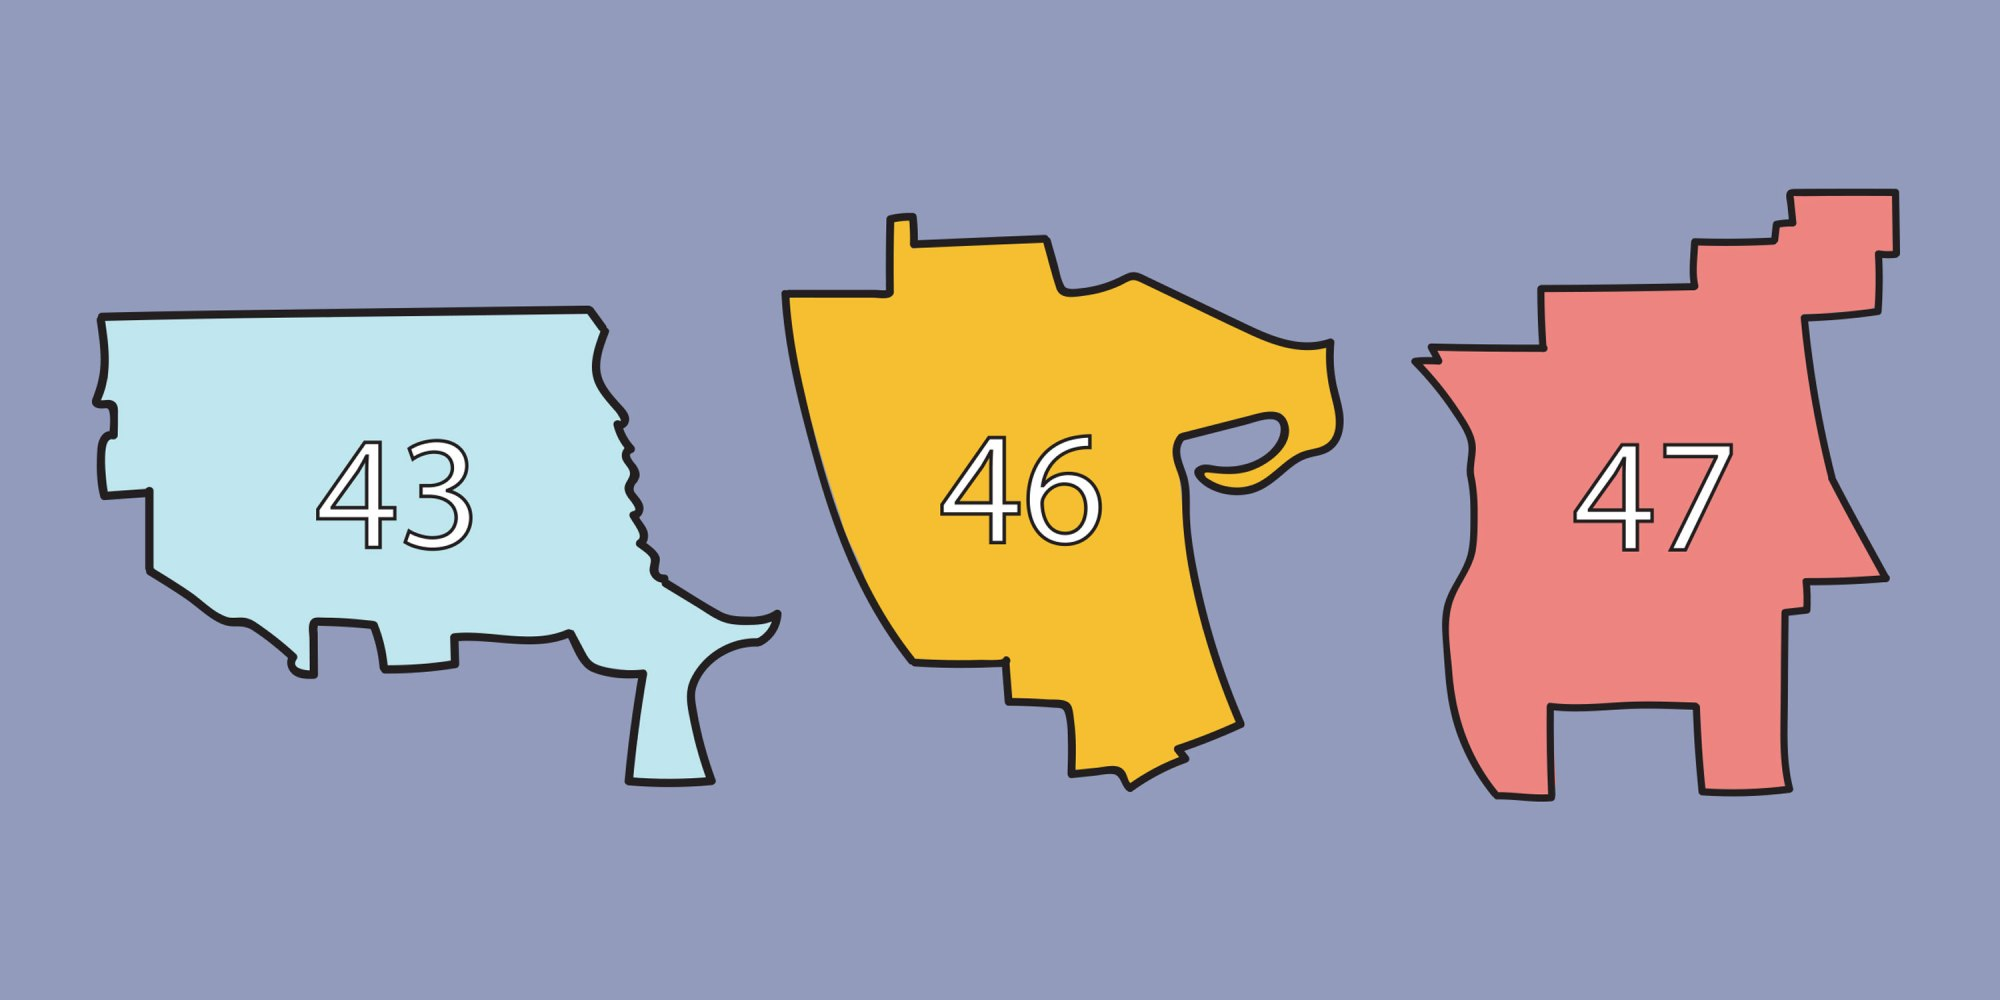 hight resolution of in our february alderman issue we outlined the top five wards the 32nd 43rd 44th 46th and 47th wards depaul students live in based off data for our